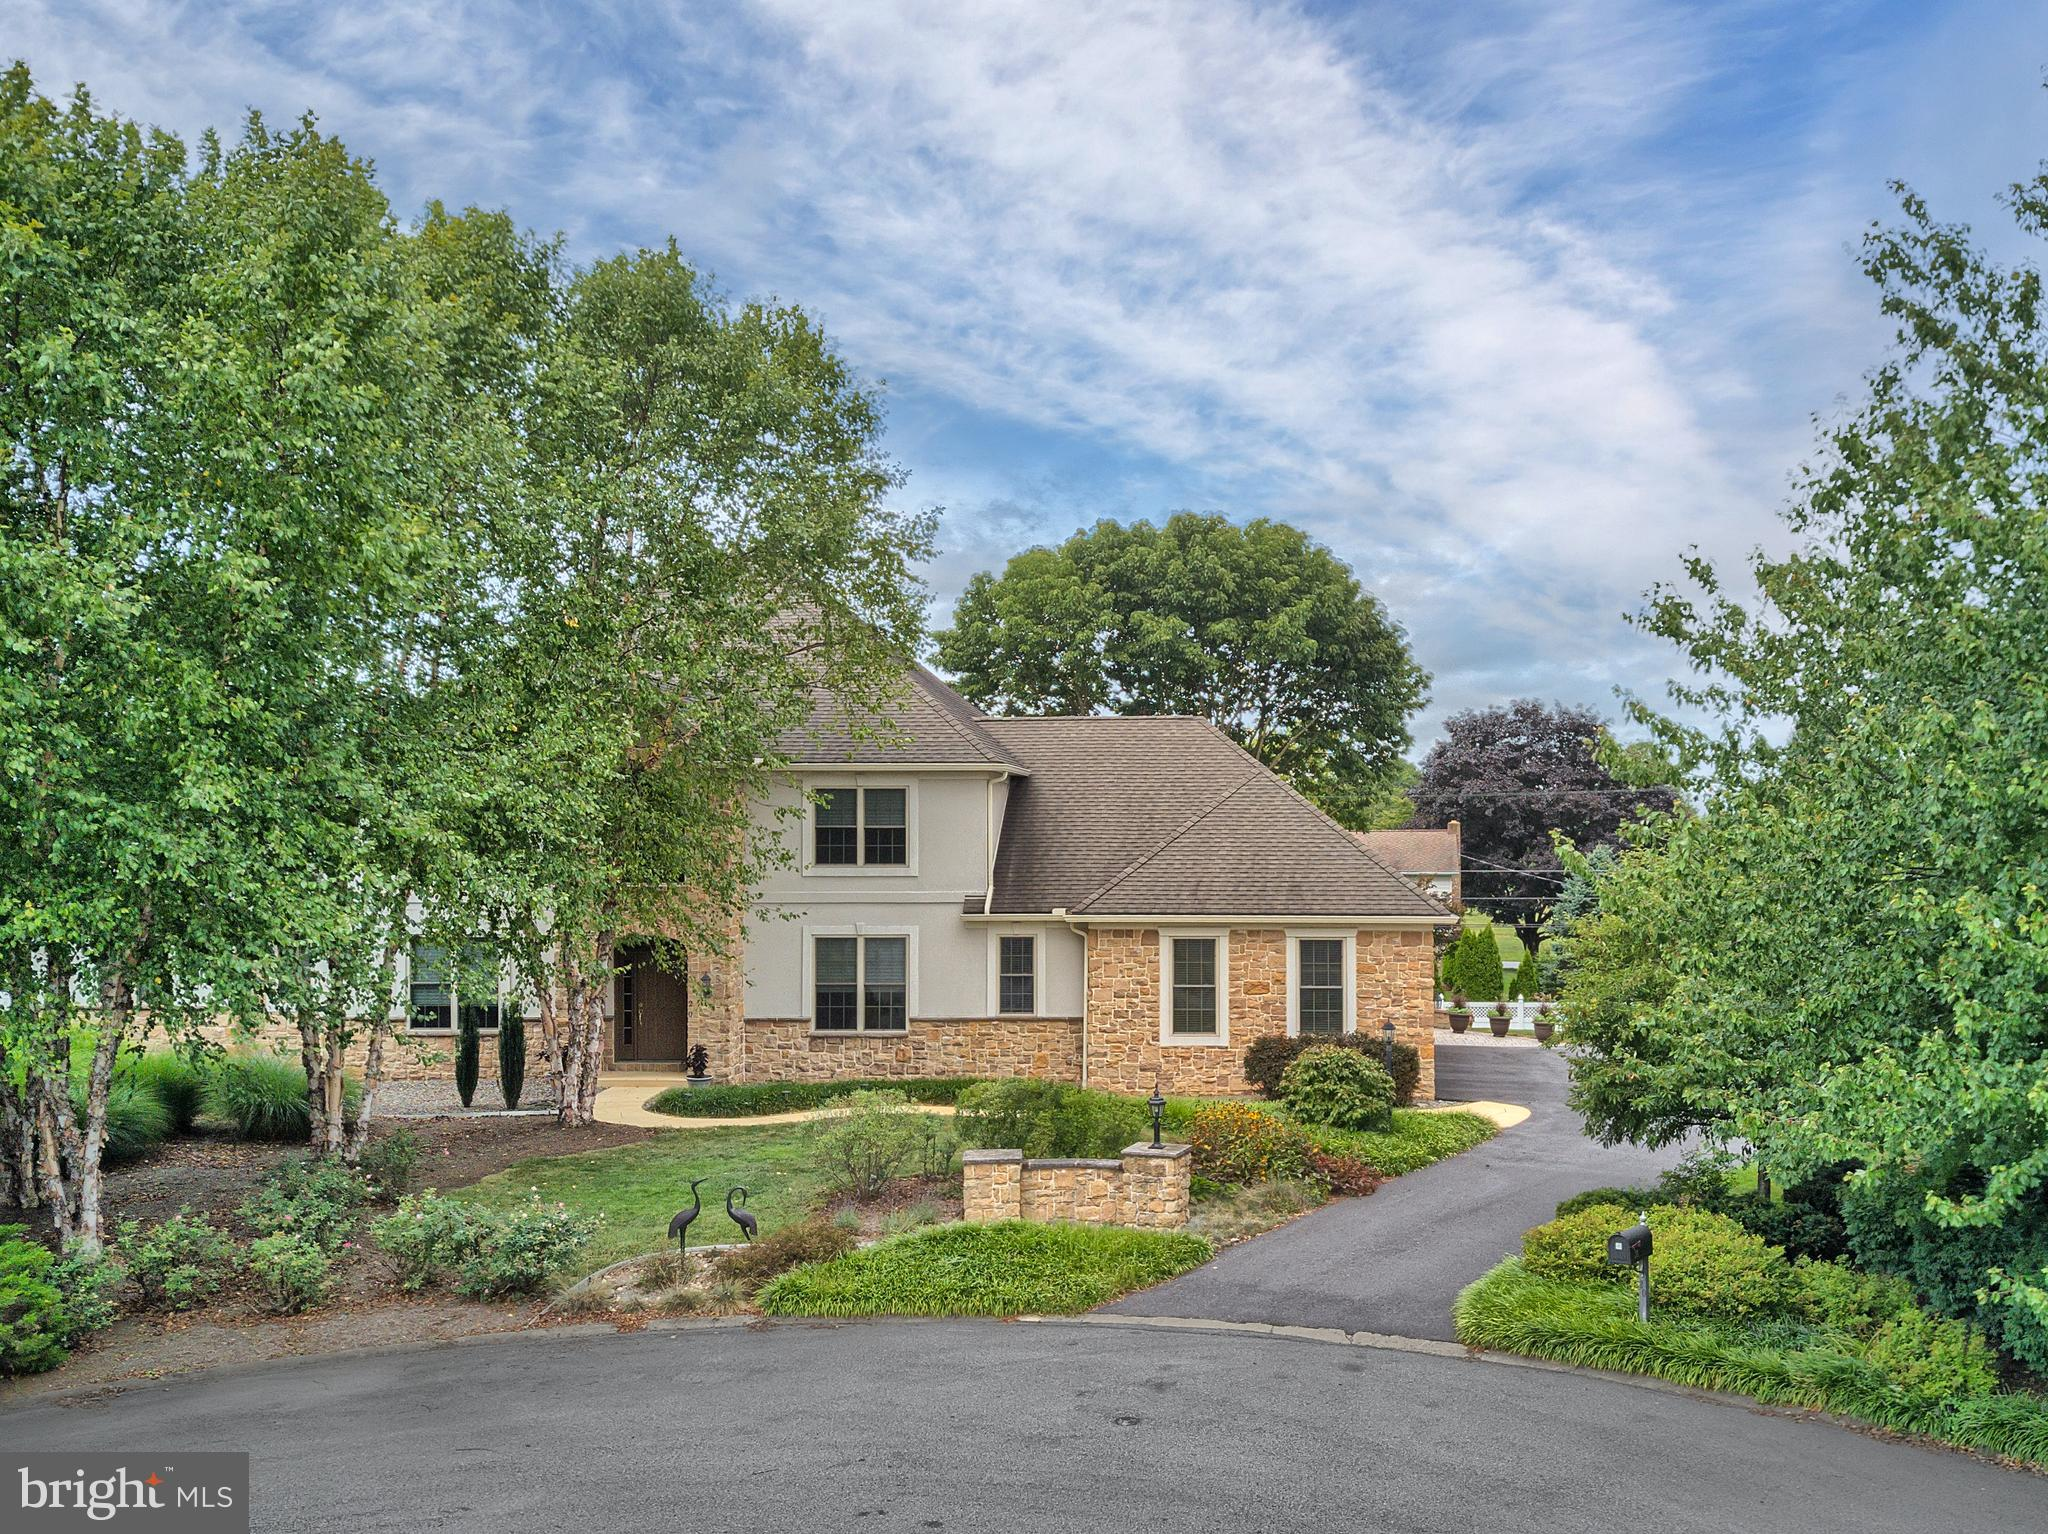 20 WETHERBURN COURT, YORK, PA 17404